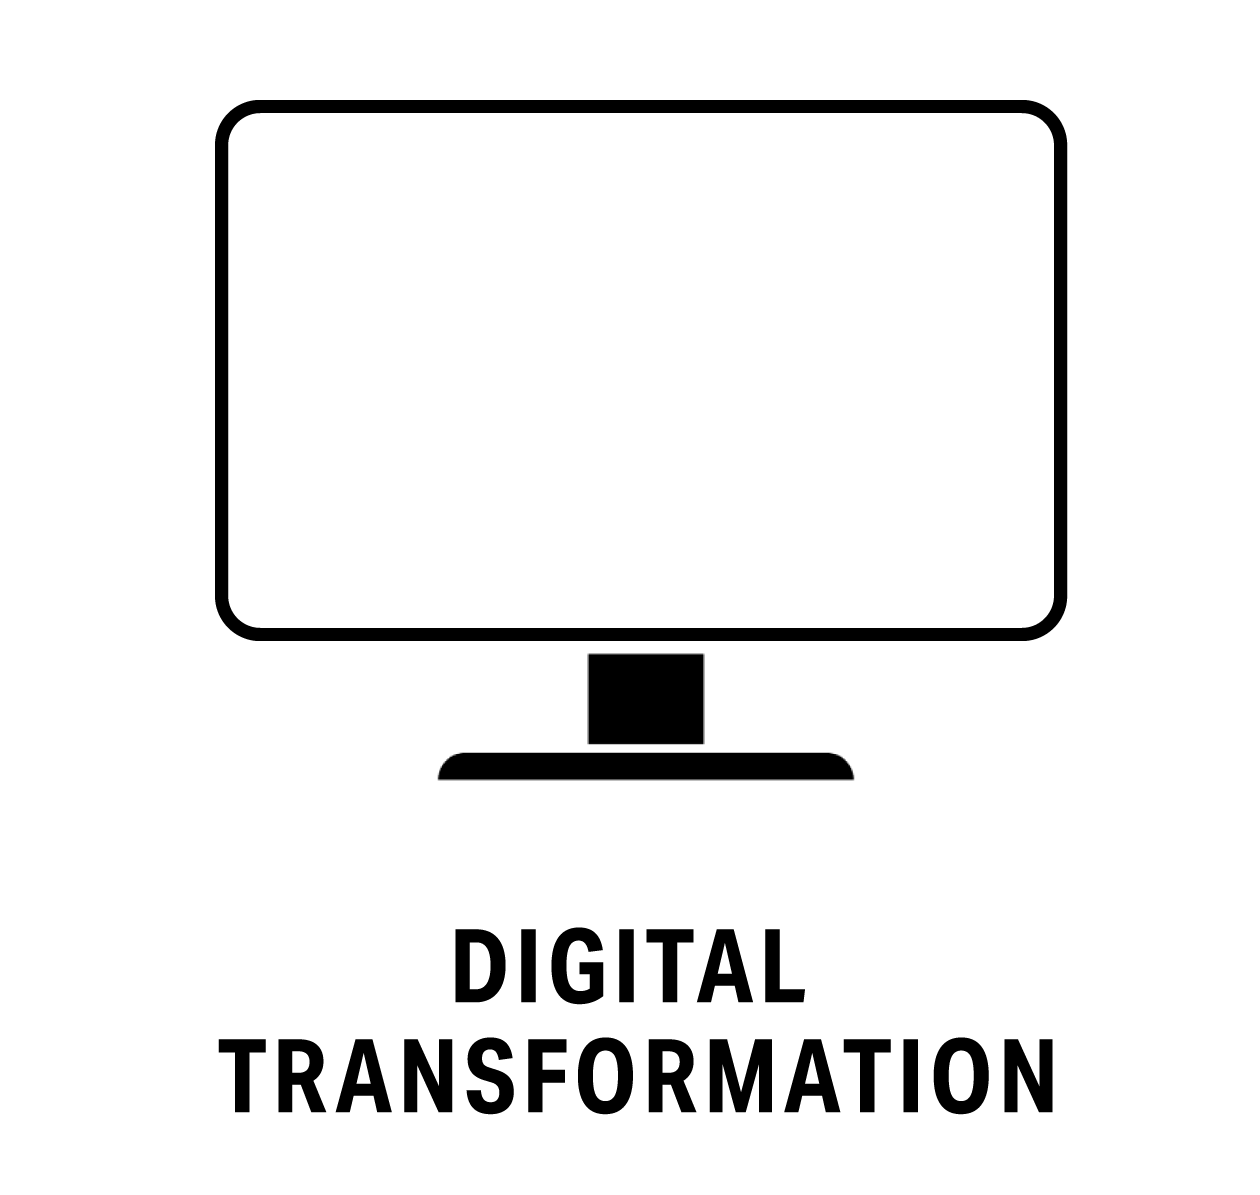 We conduct needs assessments, develop digital preservation plans, expand digital literacy, and guide organizations step-by-step through the process of digital transformation. -